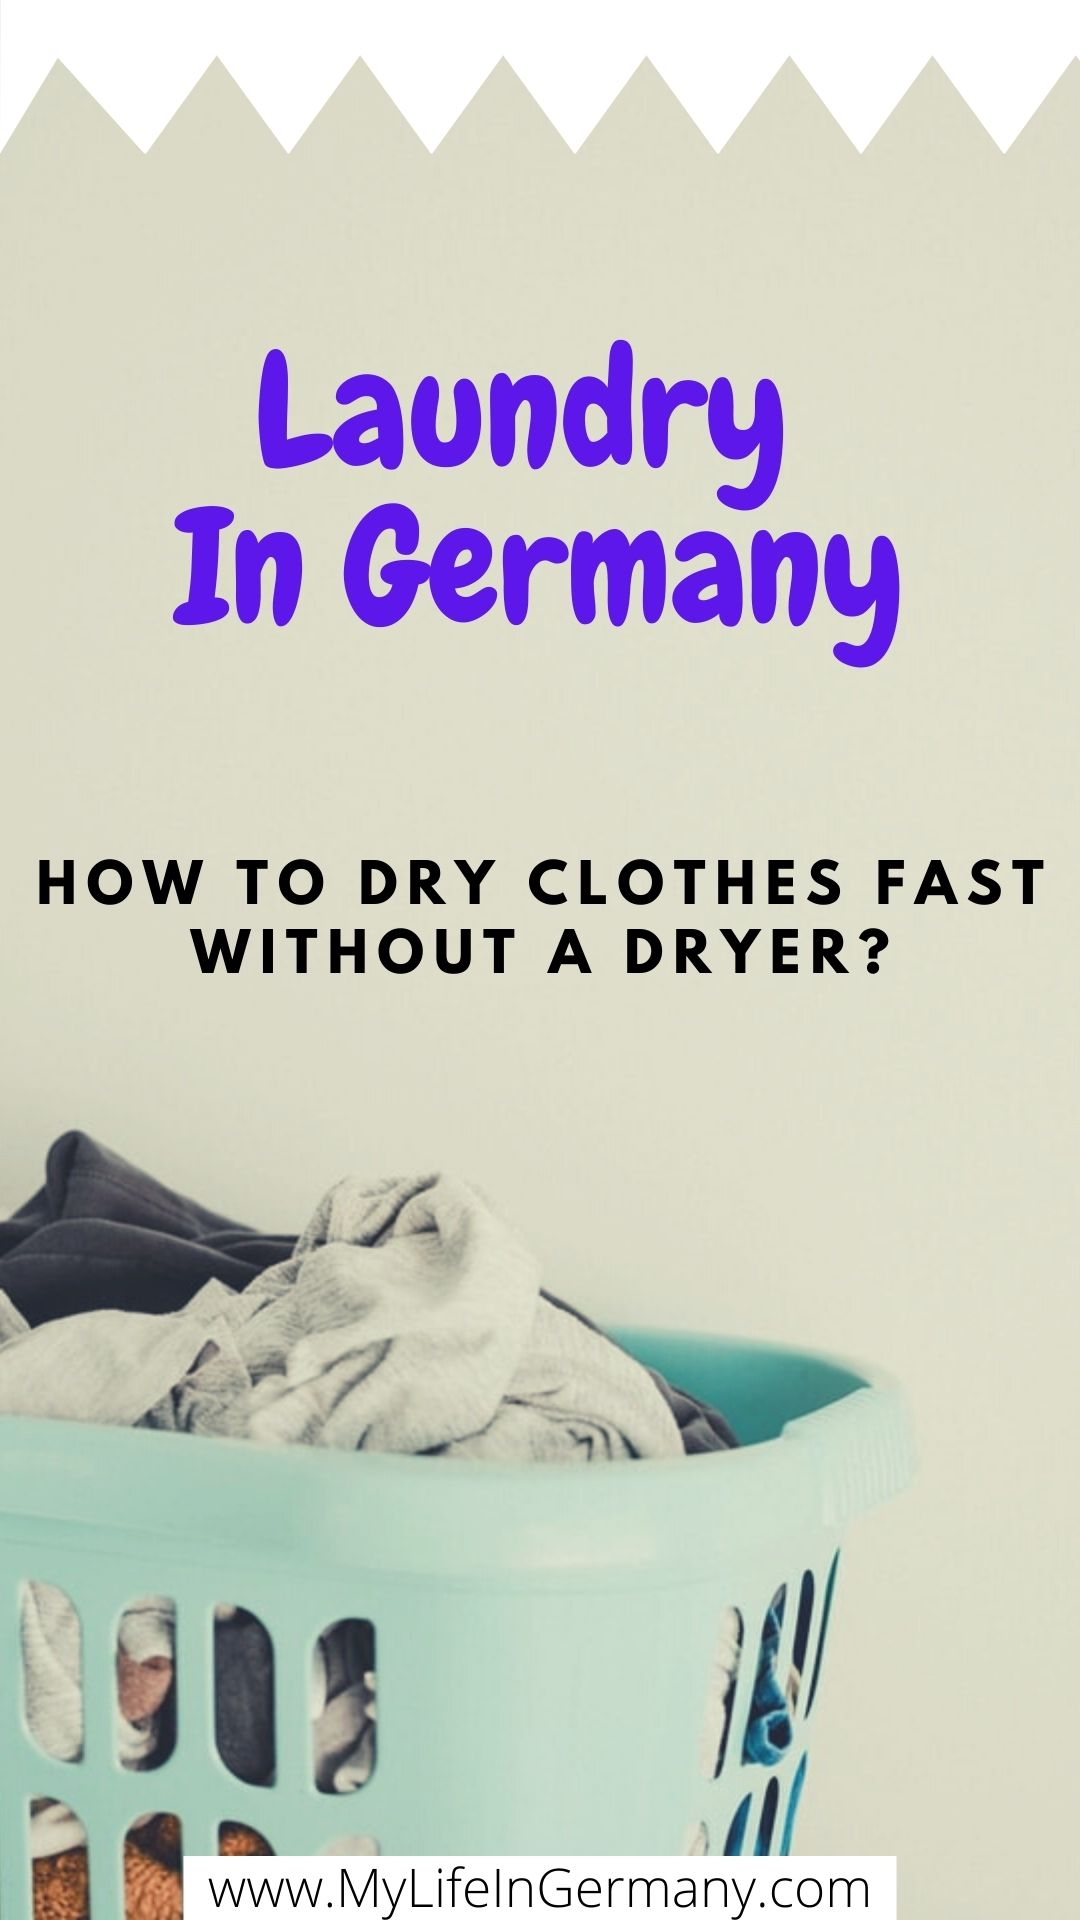 pinterest edited_laundry in germany_how to dry clothes fast_my life in germany_hkwomanabroad